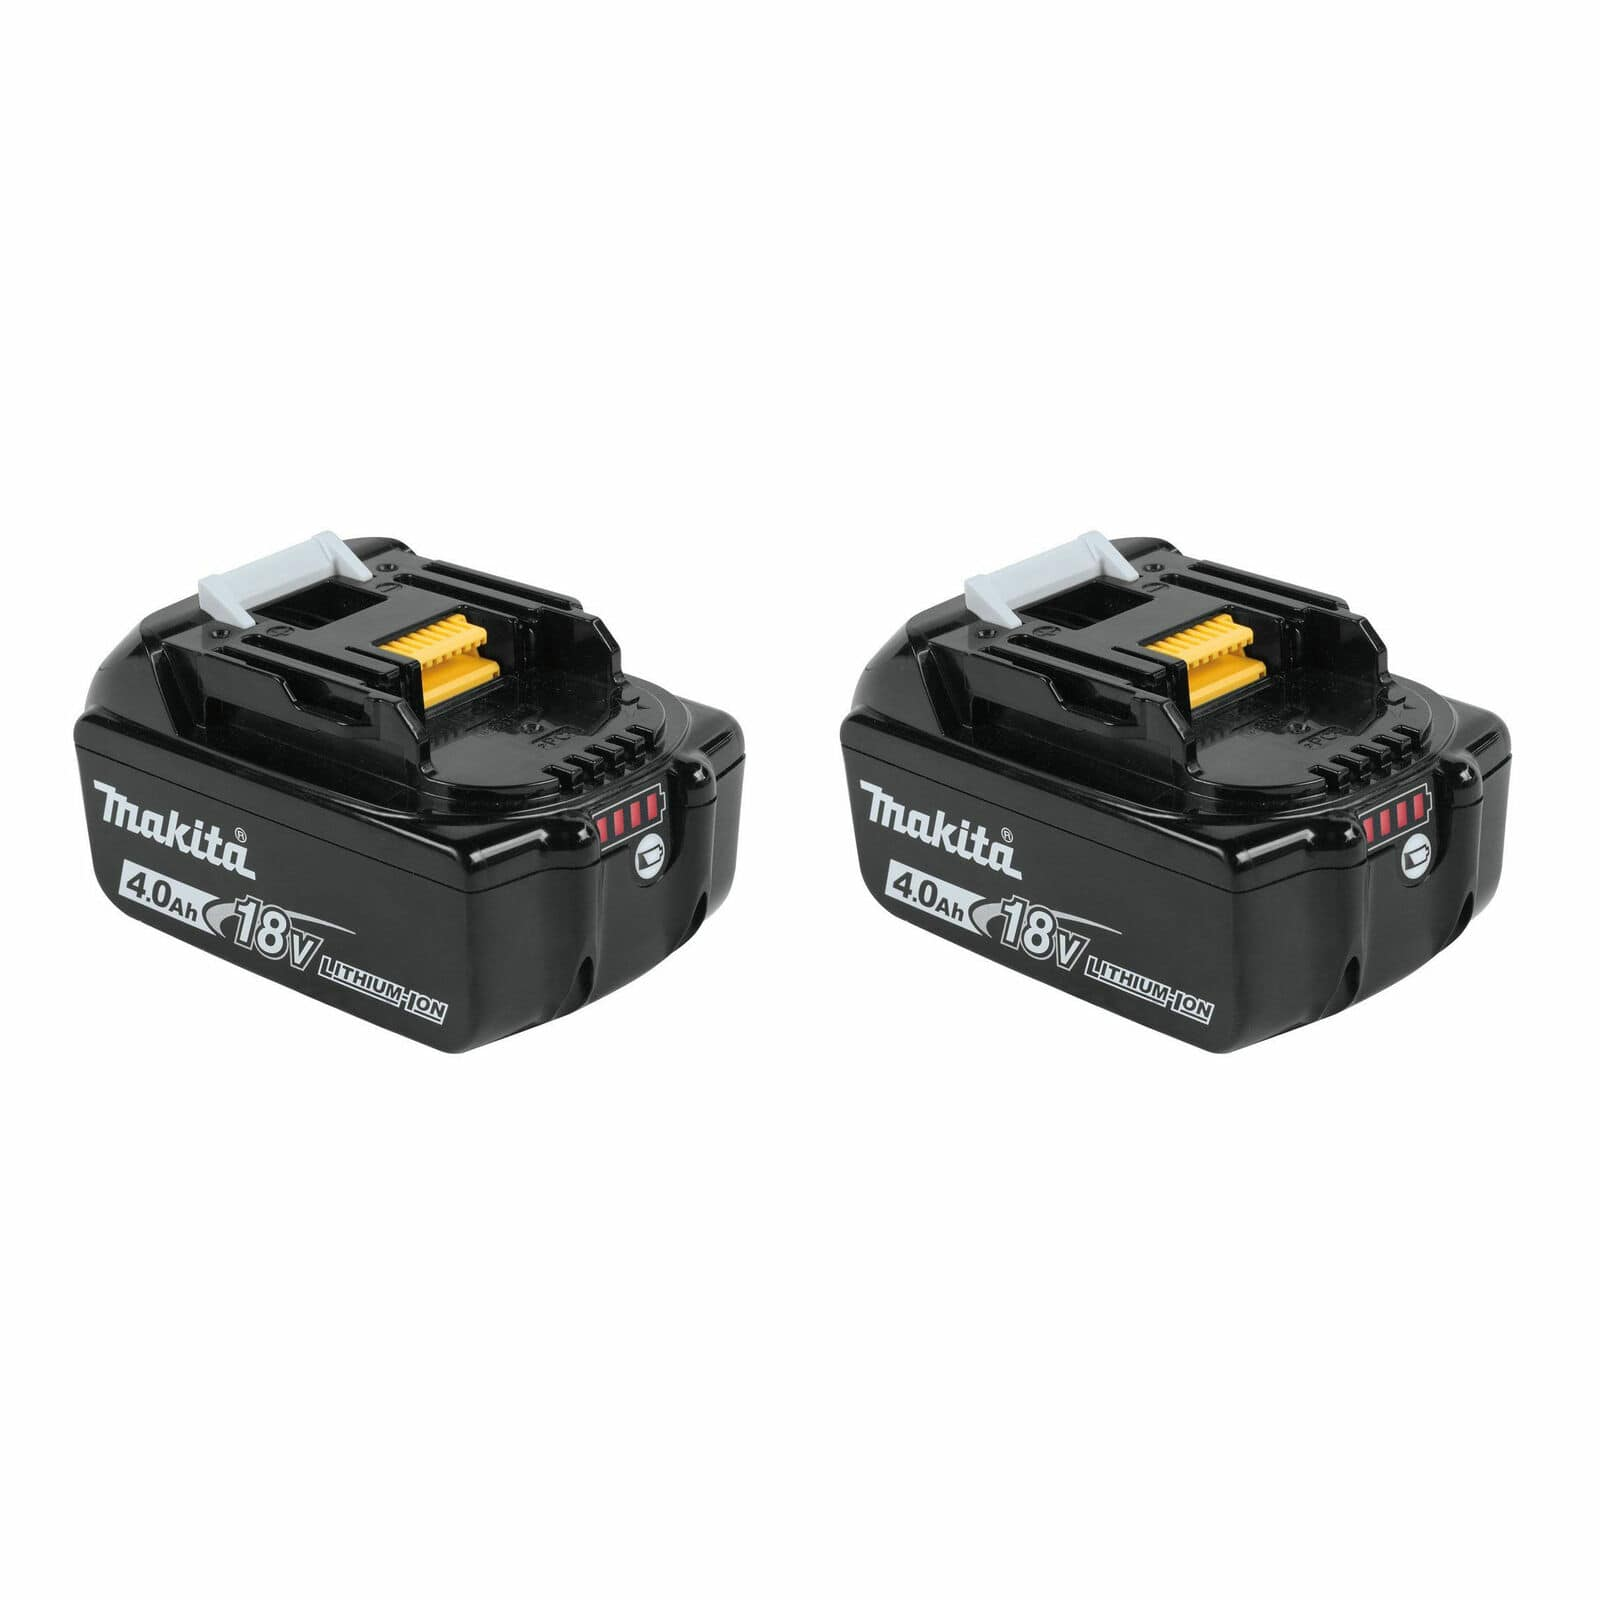 Makita BL1840B-2 18-Volt 4.0Ah LXT Lithium-Ion Battery, 2-Pack $82.99 74.65 YMMV Cheapest Ever